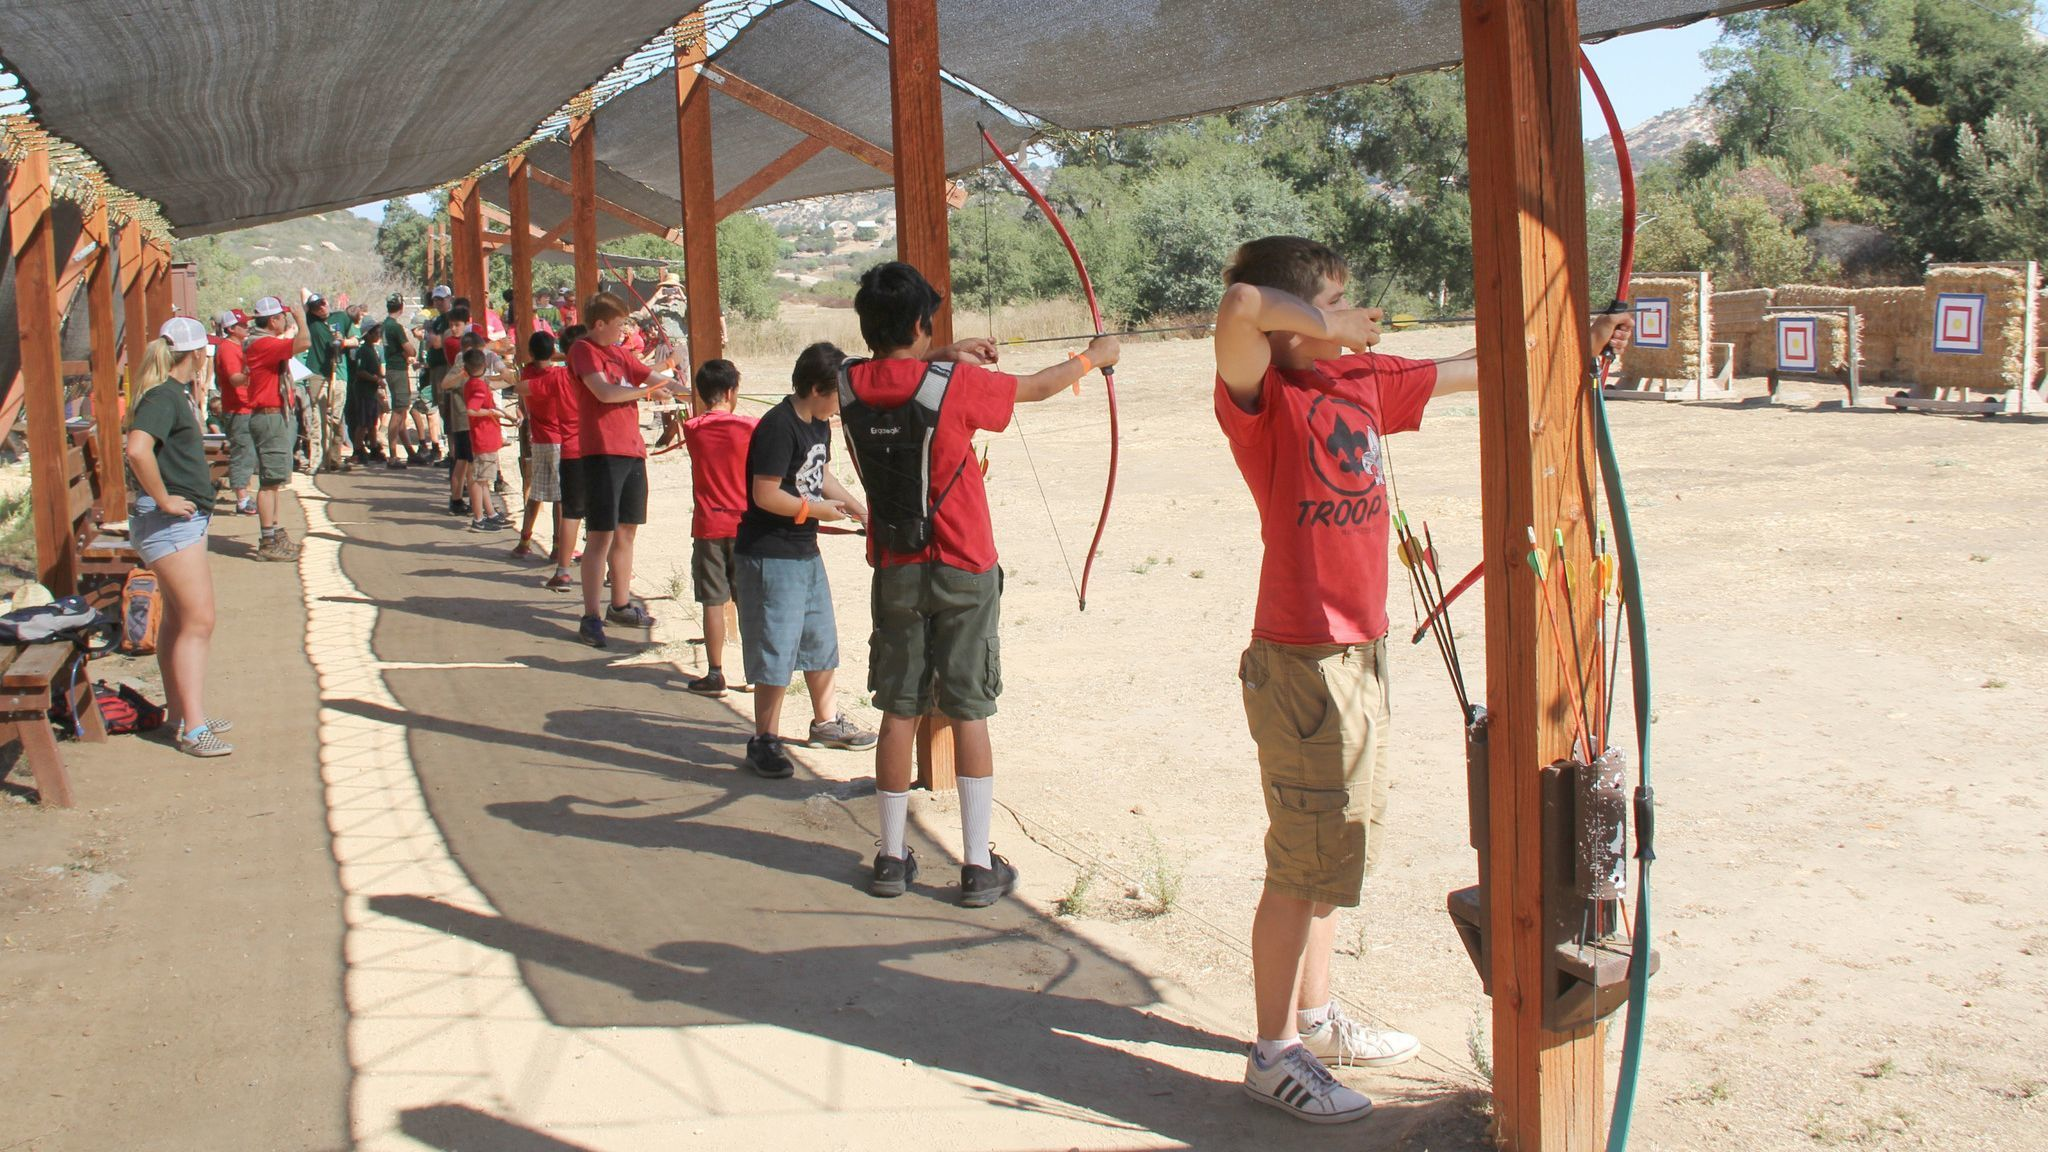 Boy Scouts practice archery skills at the annual Camporee.